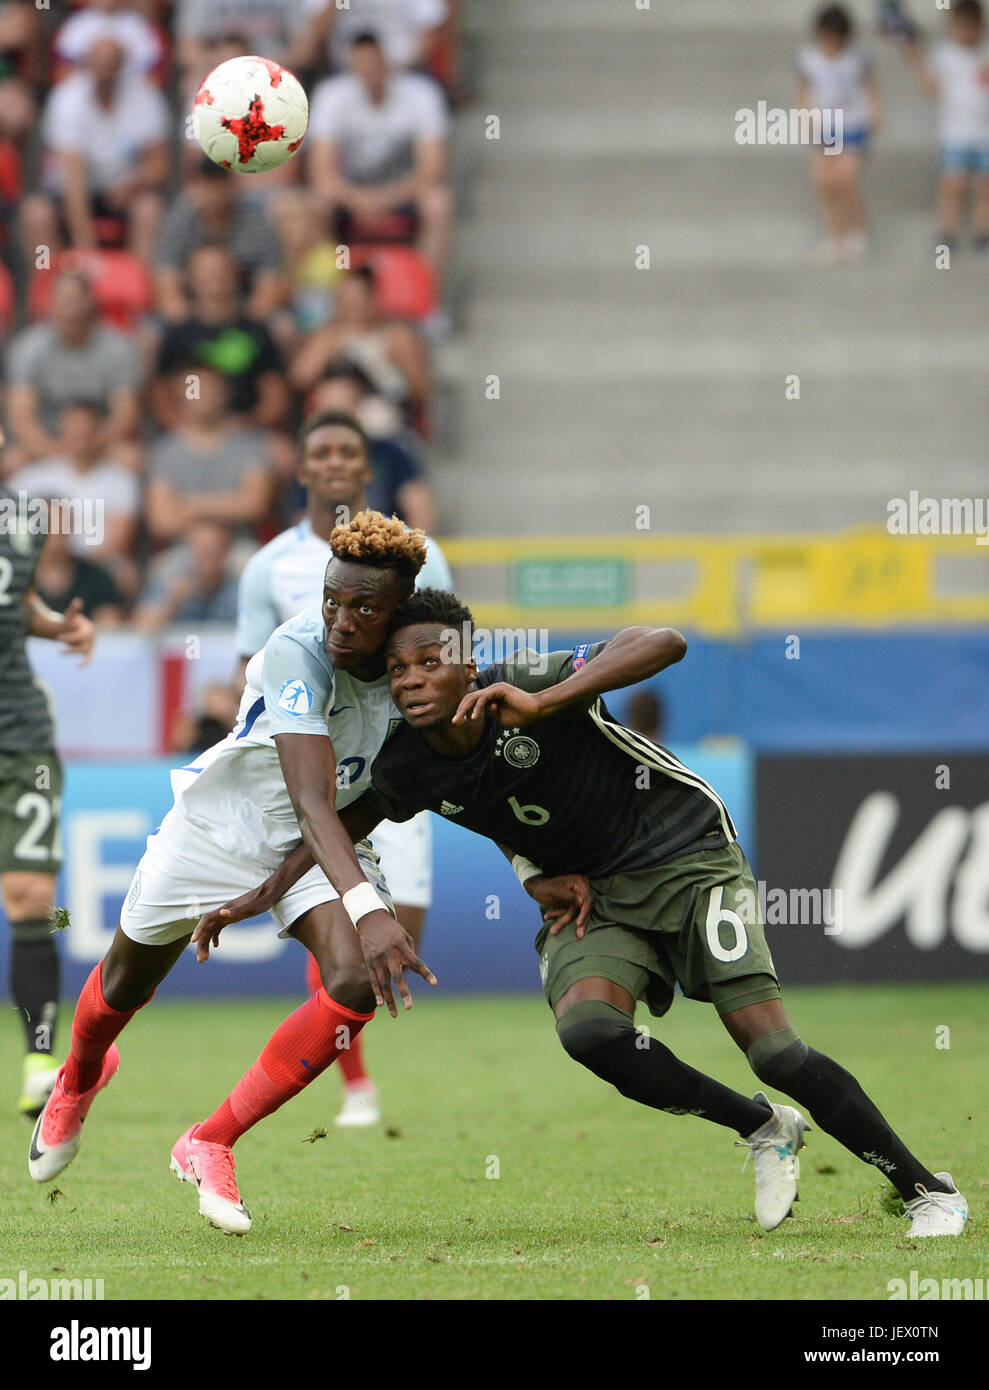 Tychy, Poland. 27th June, 2017. England's Tammy Abraham (L) and Germany's Gideon Jung in action during the - Stock Image